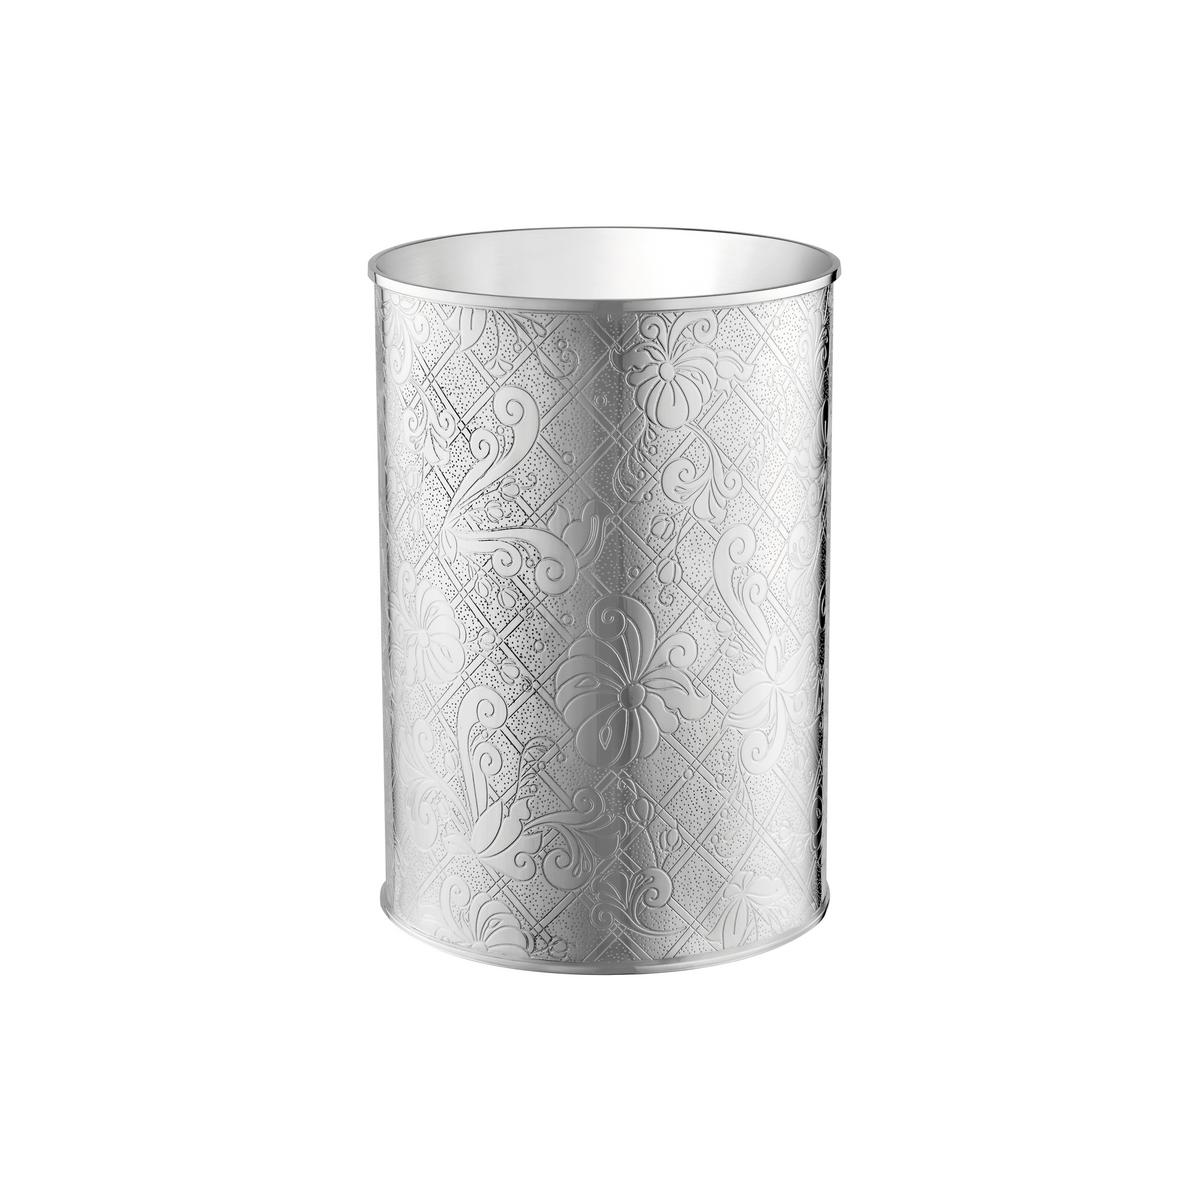 Christofle jardin d 39 eden pencil holder for Jardin d eden